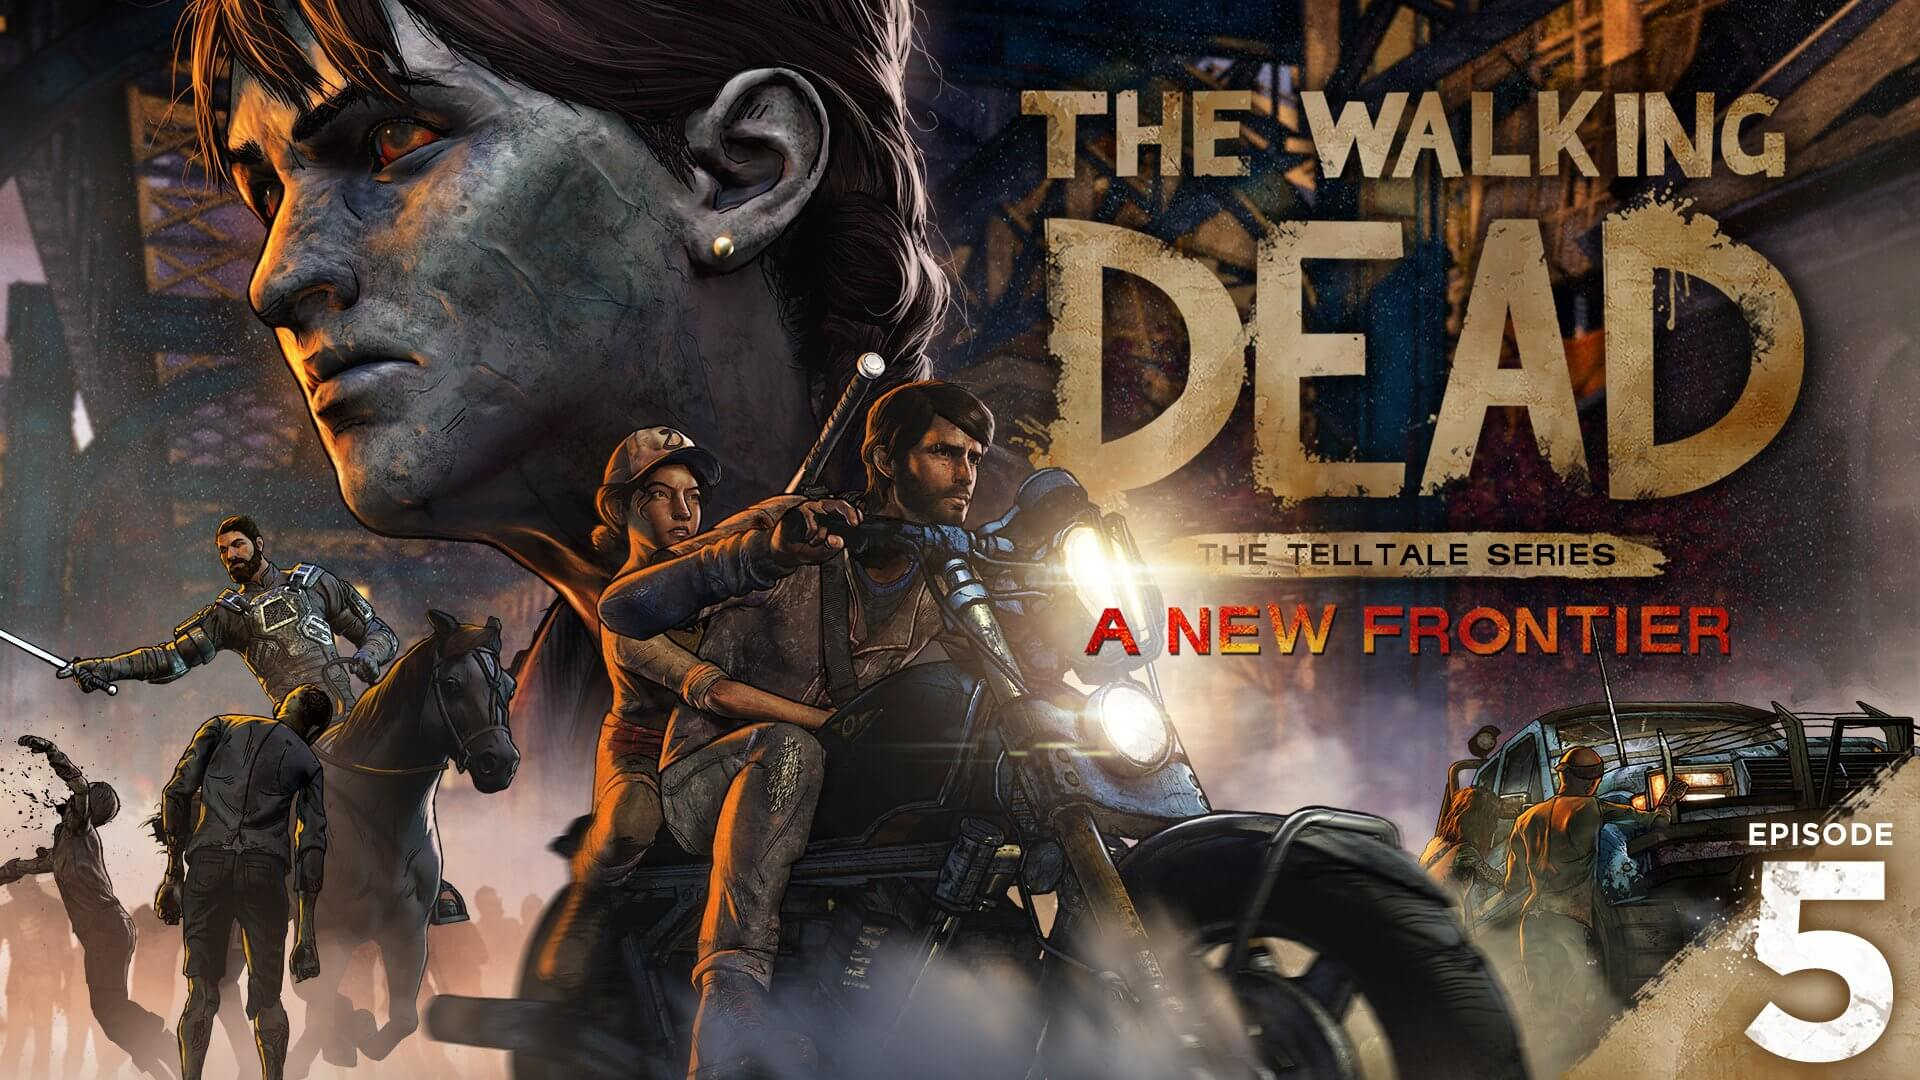 The Walking Dead A New Frontier Episode 5 Dated